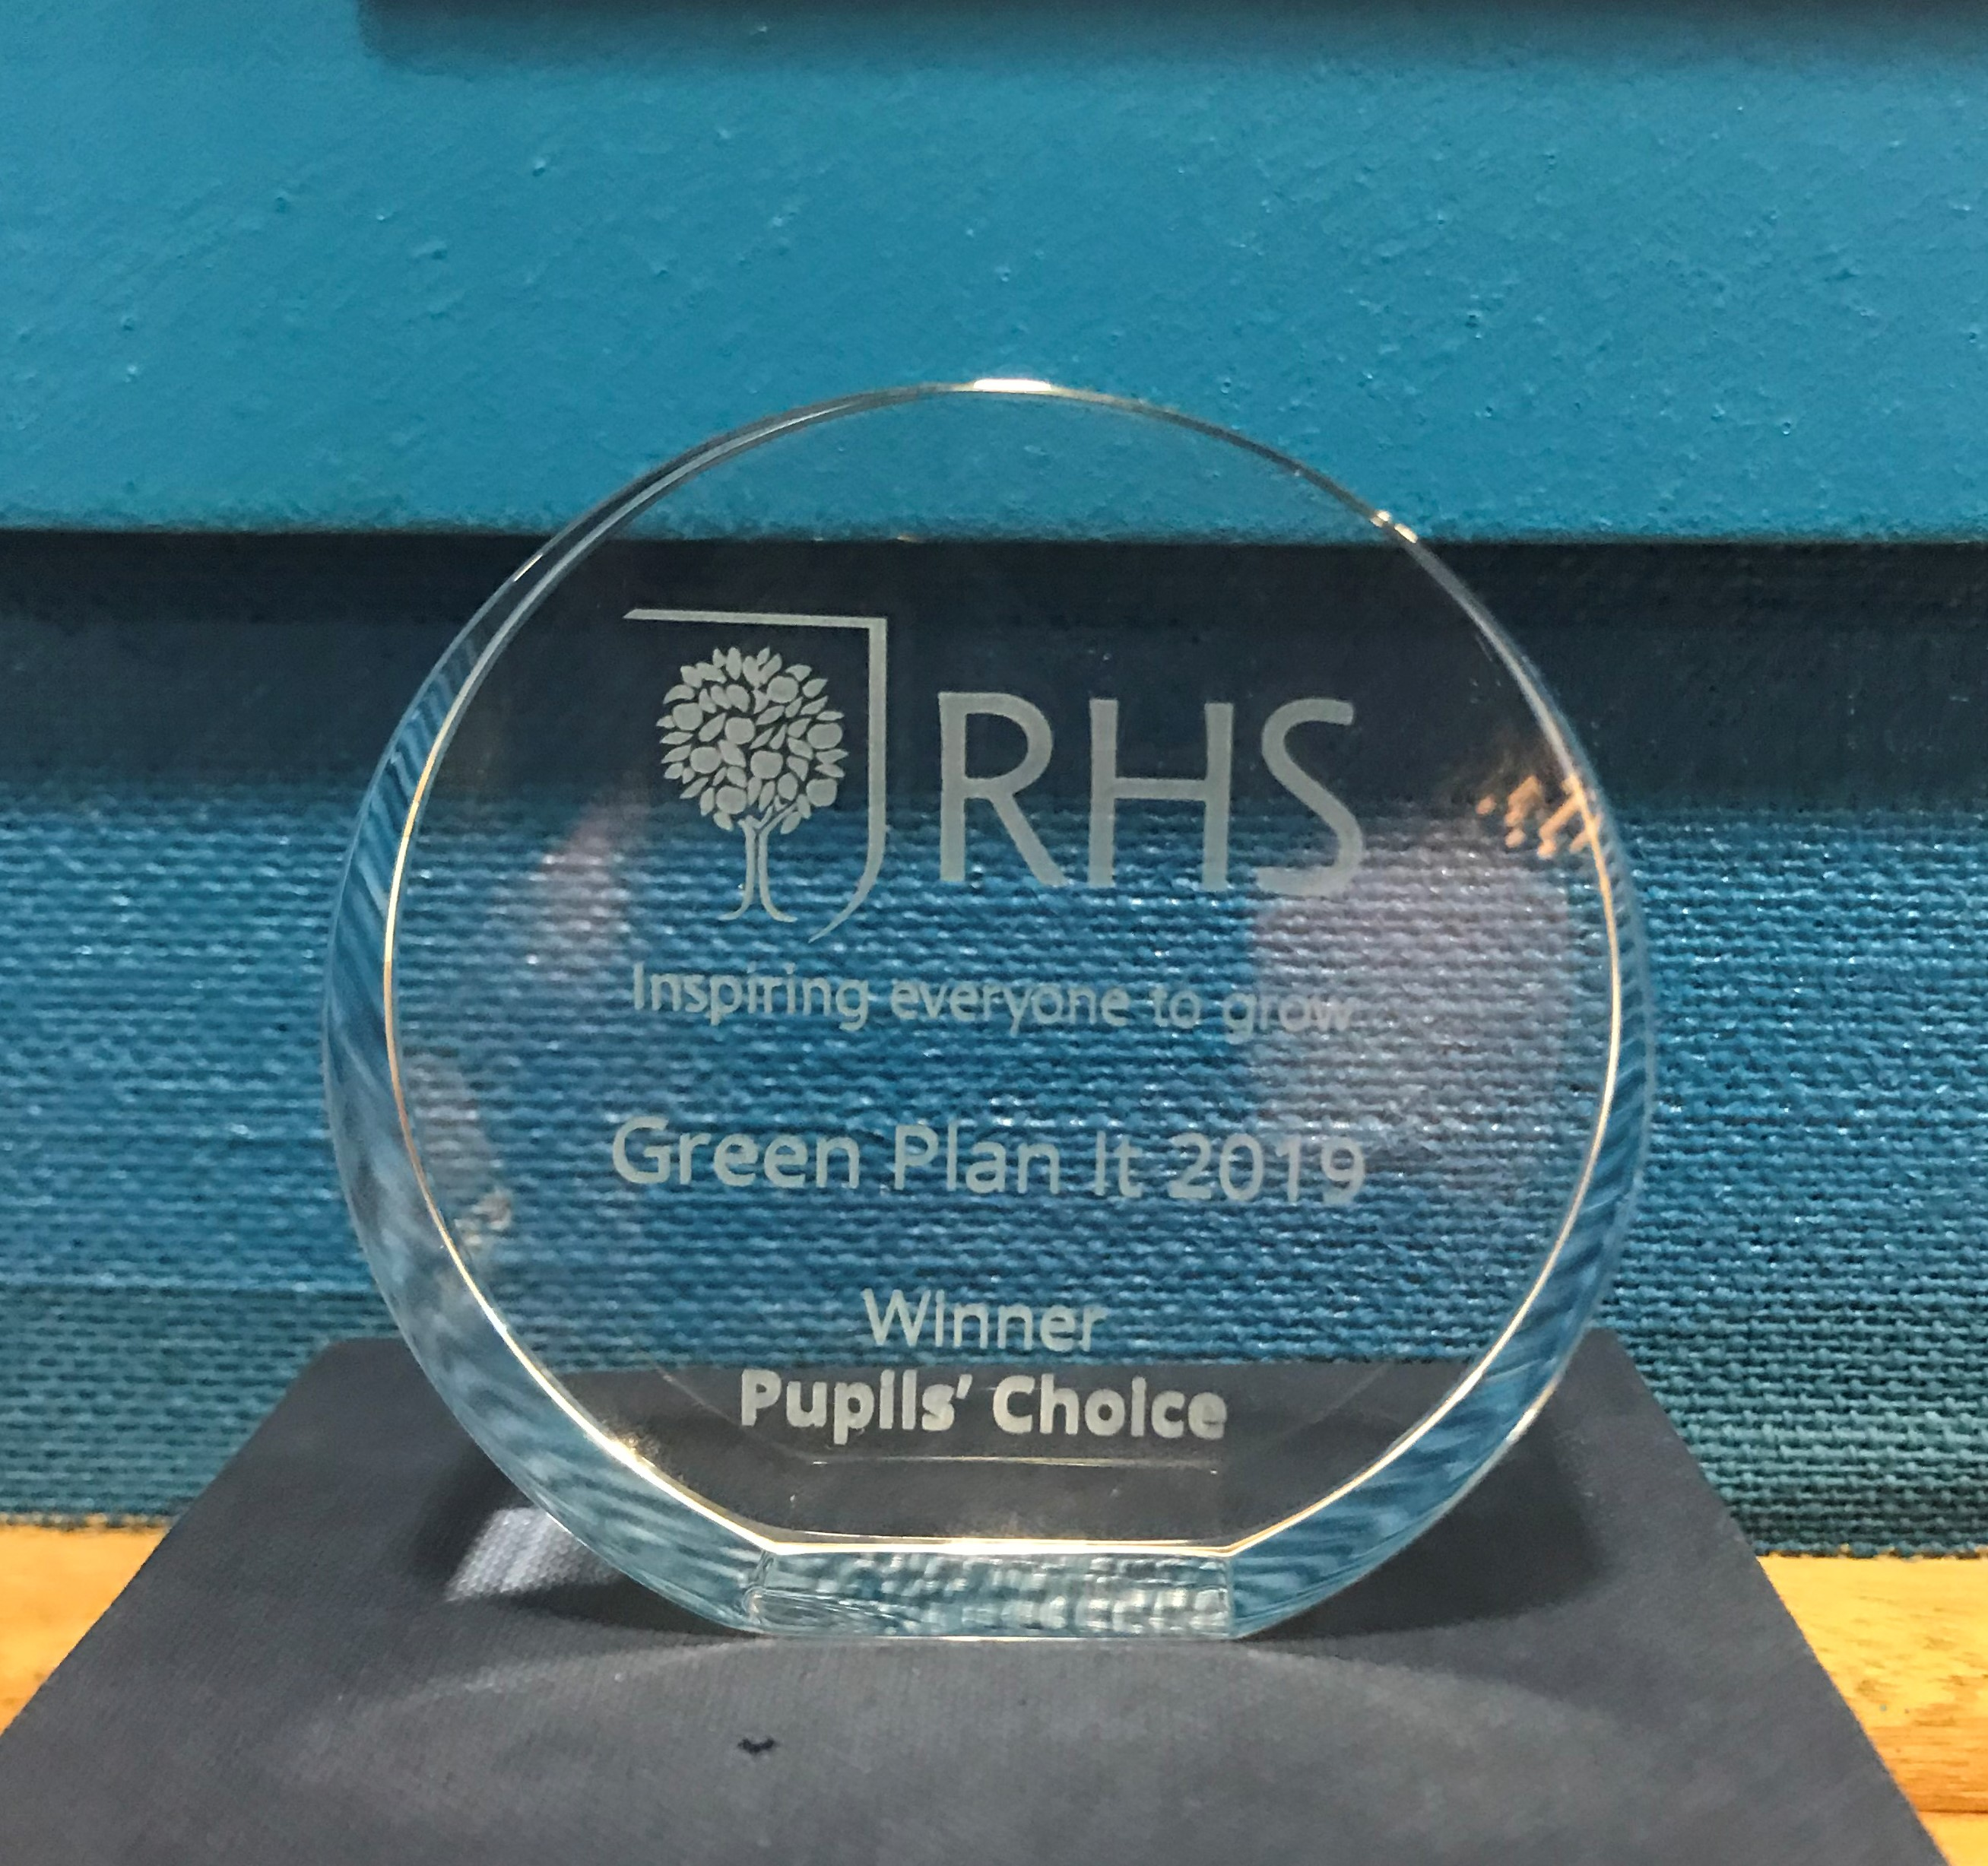 Royal Horticultural Society's competition Green Plan